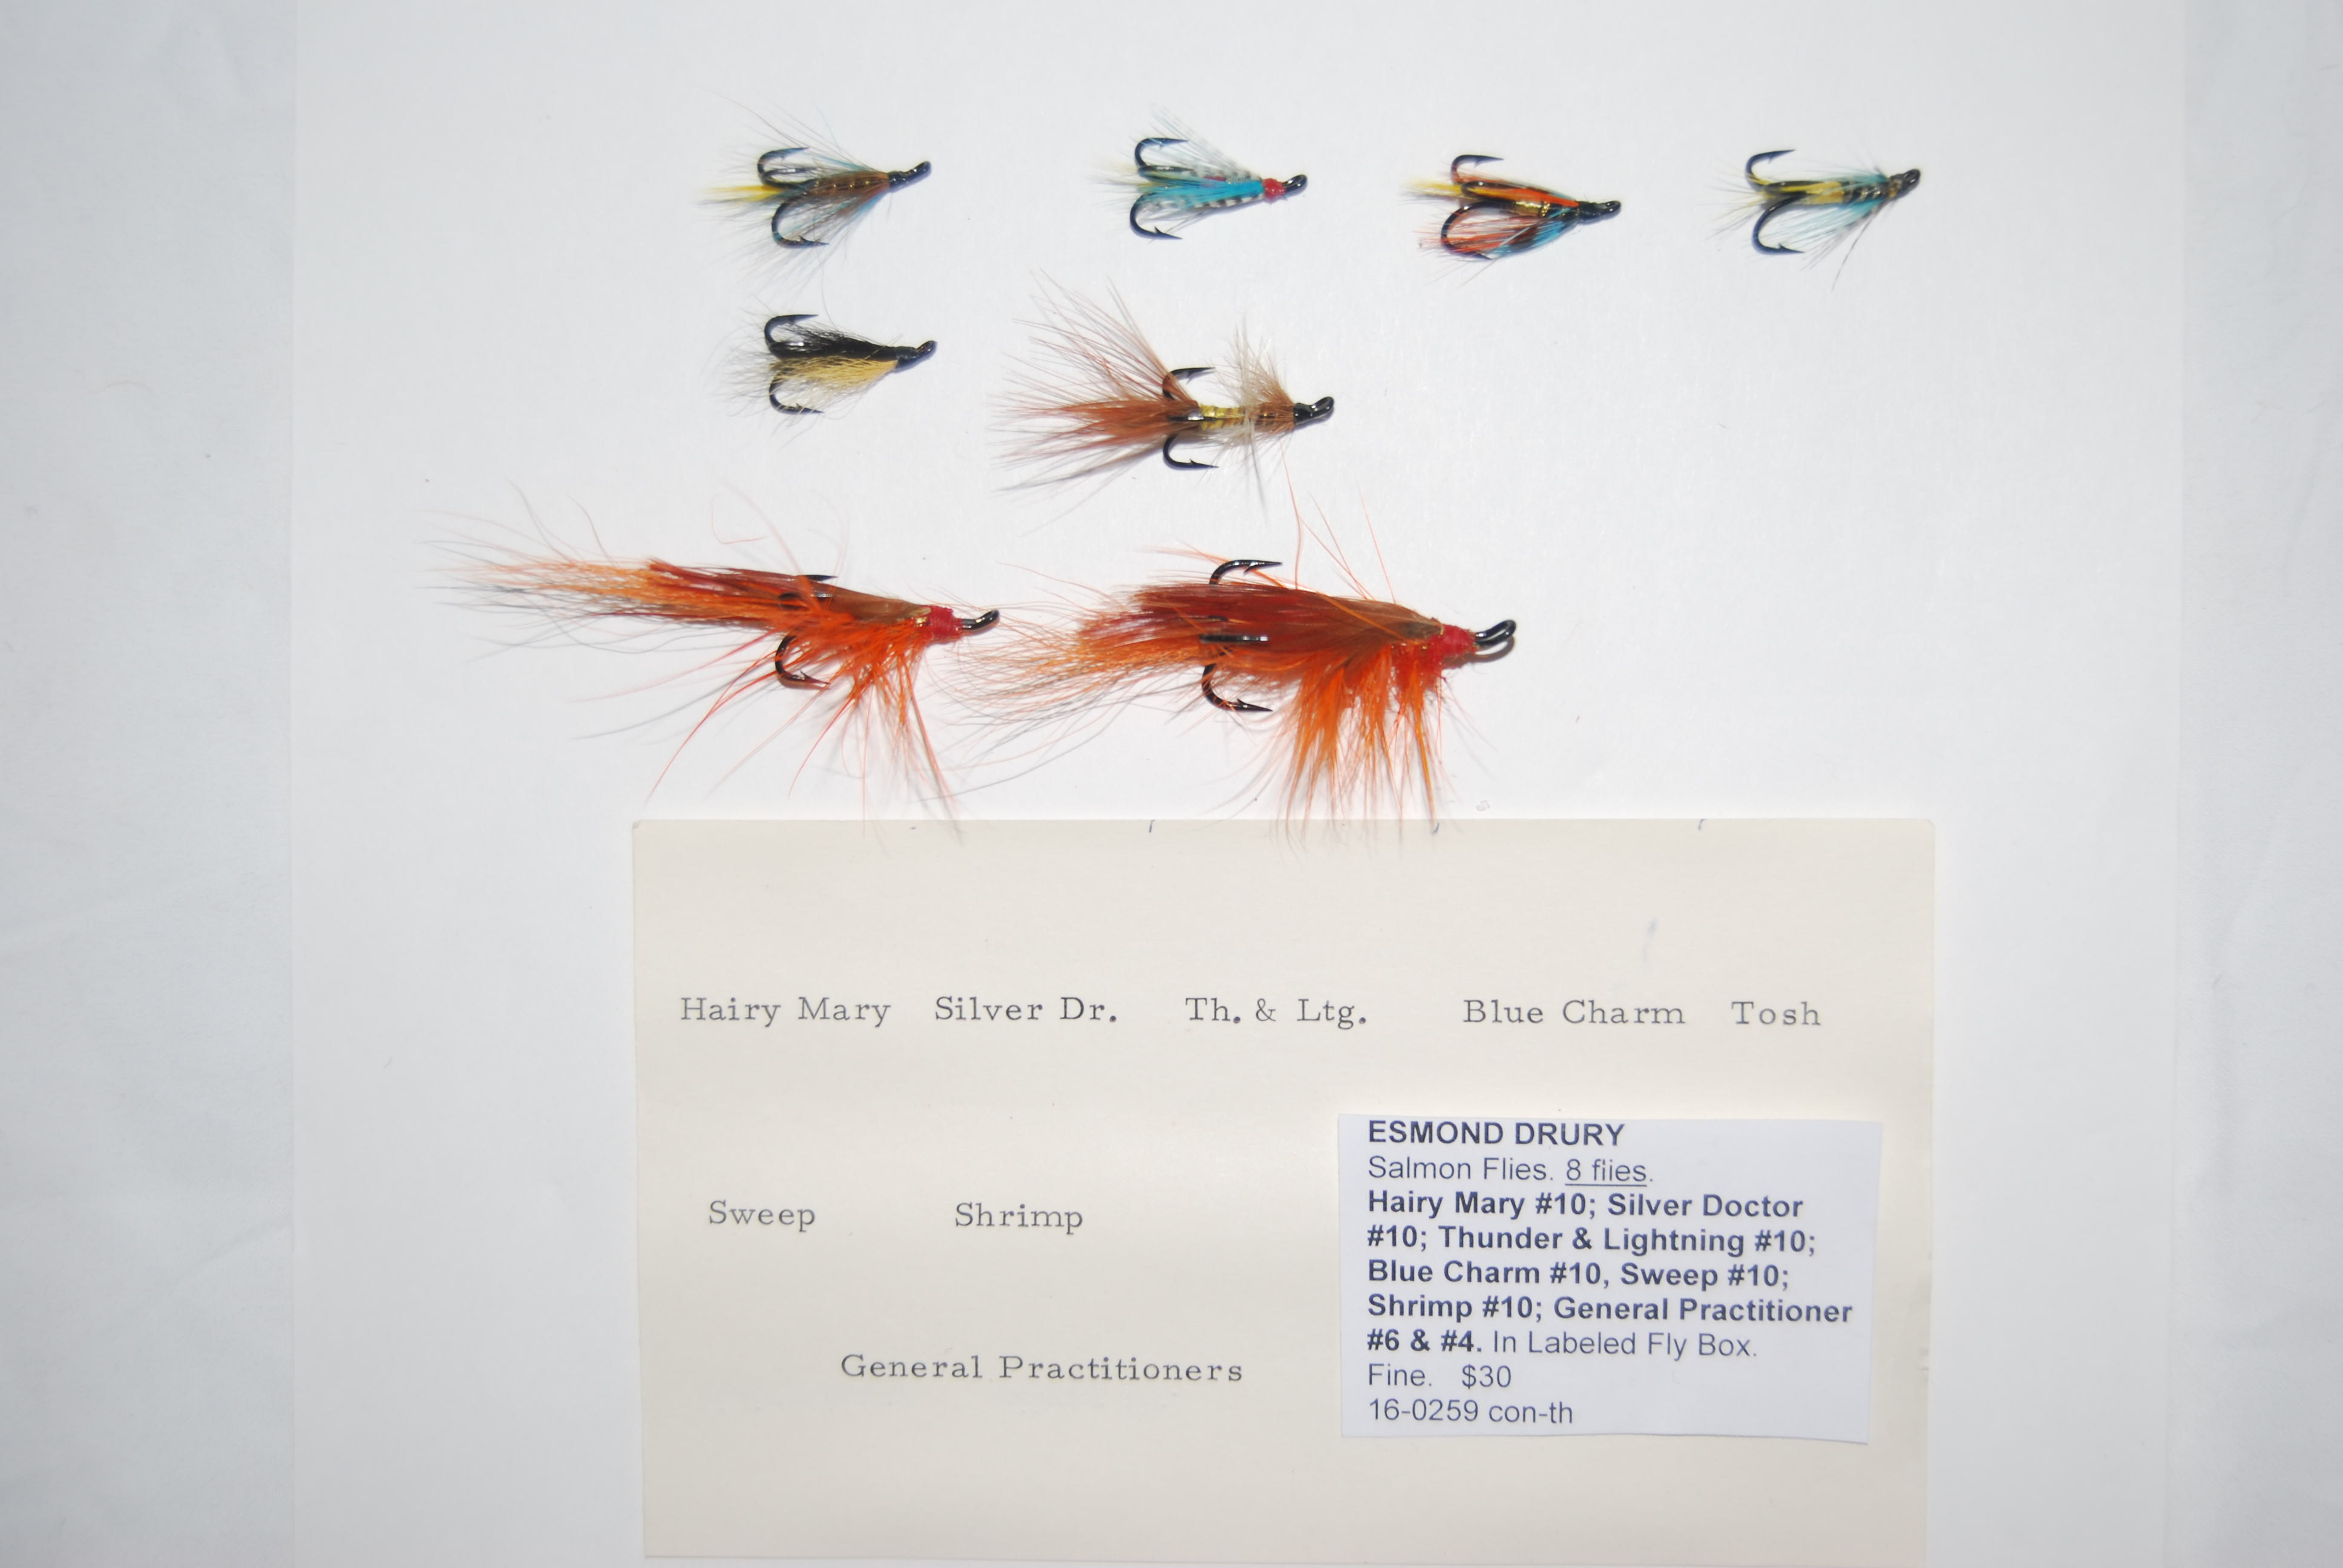 Image for ESMOND DRURY Salmon Flies. 8 Flies, all labeled on Esmond Drury Treble Hooks, in Scientific Angler plastic fly box with following flies: Hairy Mary #10; Silver Doctor #10; Thunder & Lightning #10; Sweep #10; Shrimp #10; General Practitioner #6 & #4. Labels are printed on the base of the Fly Box.